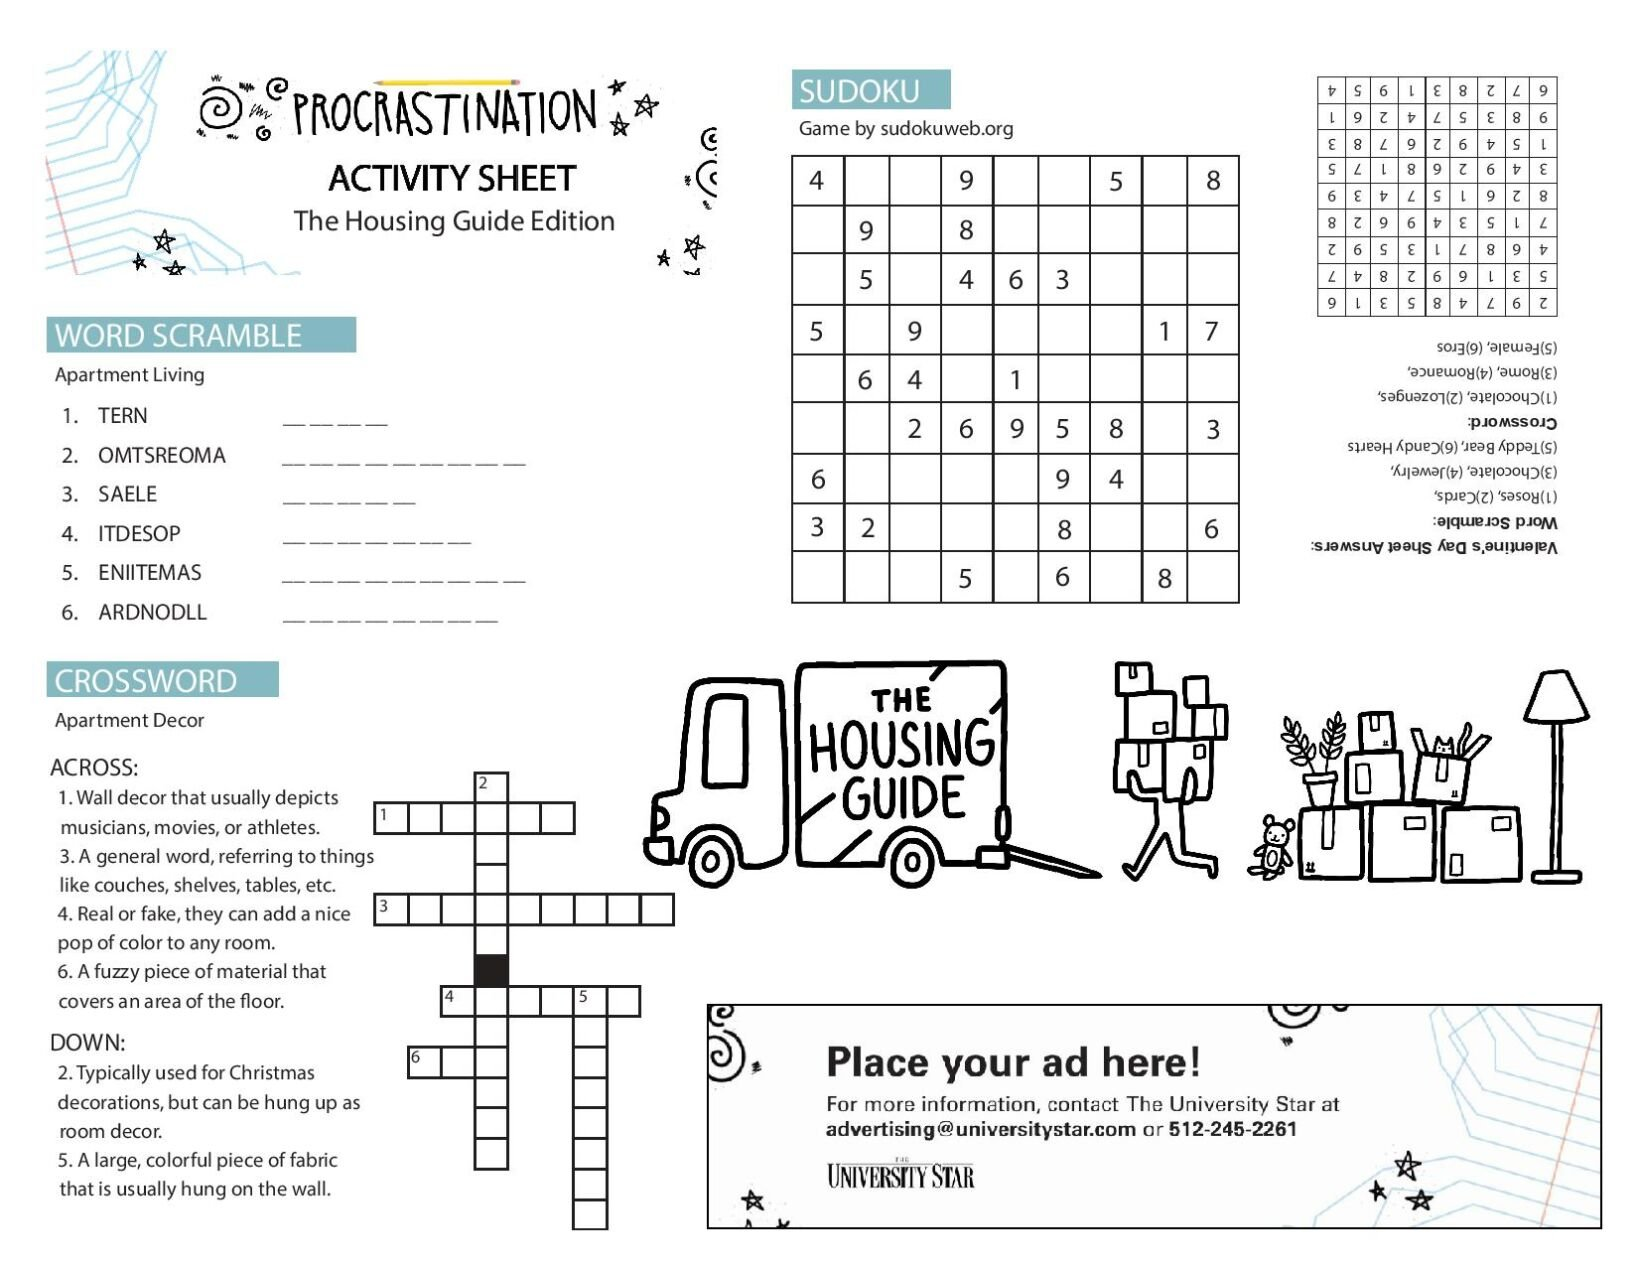 Our printable activity sheet.